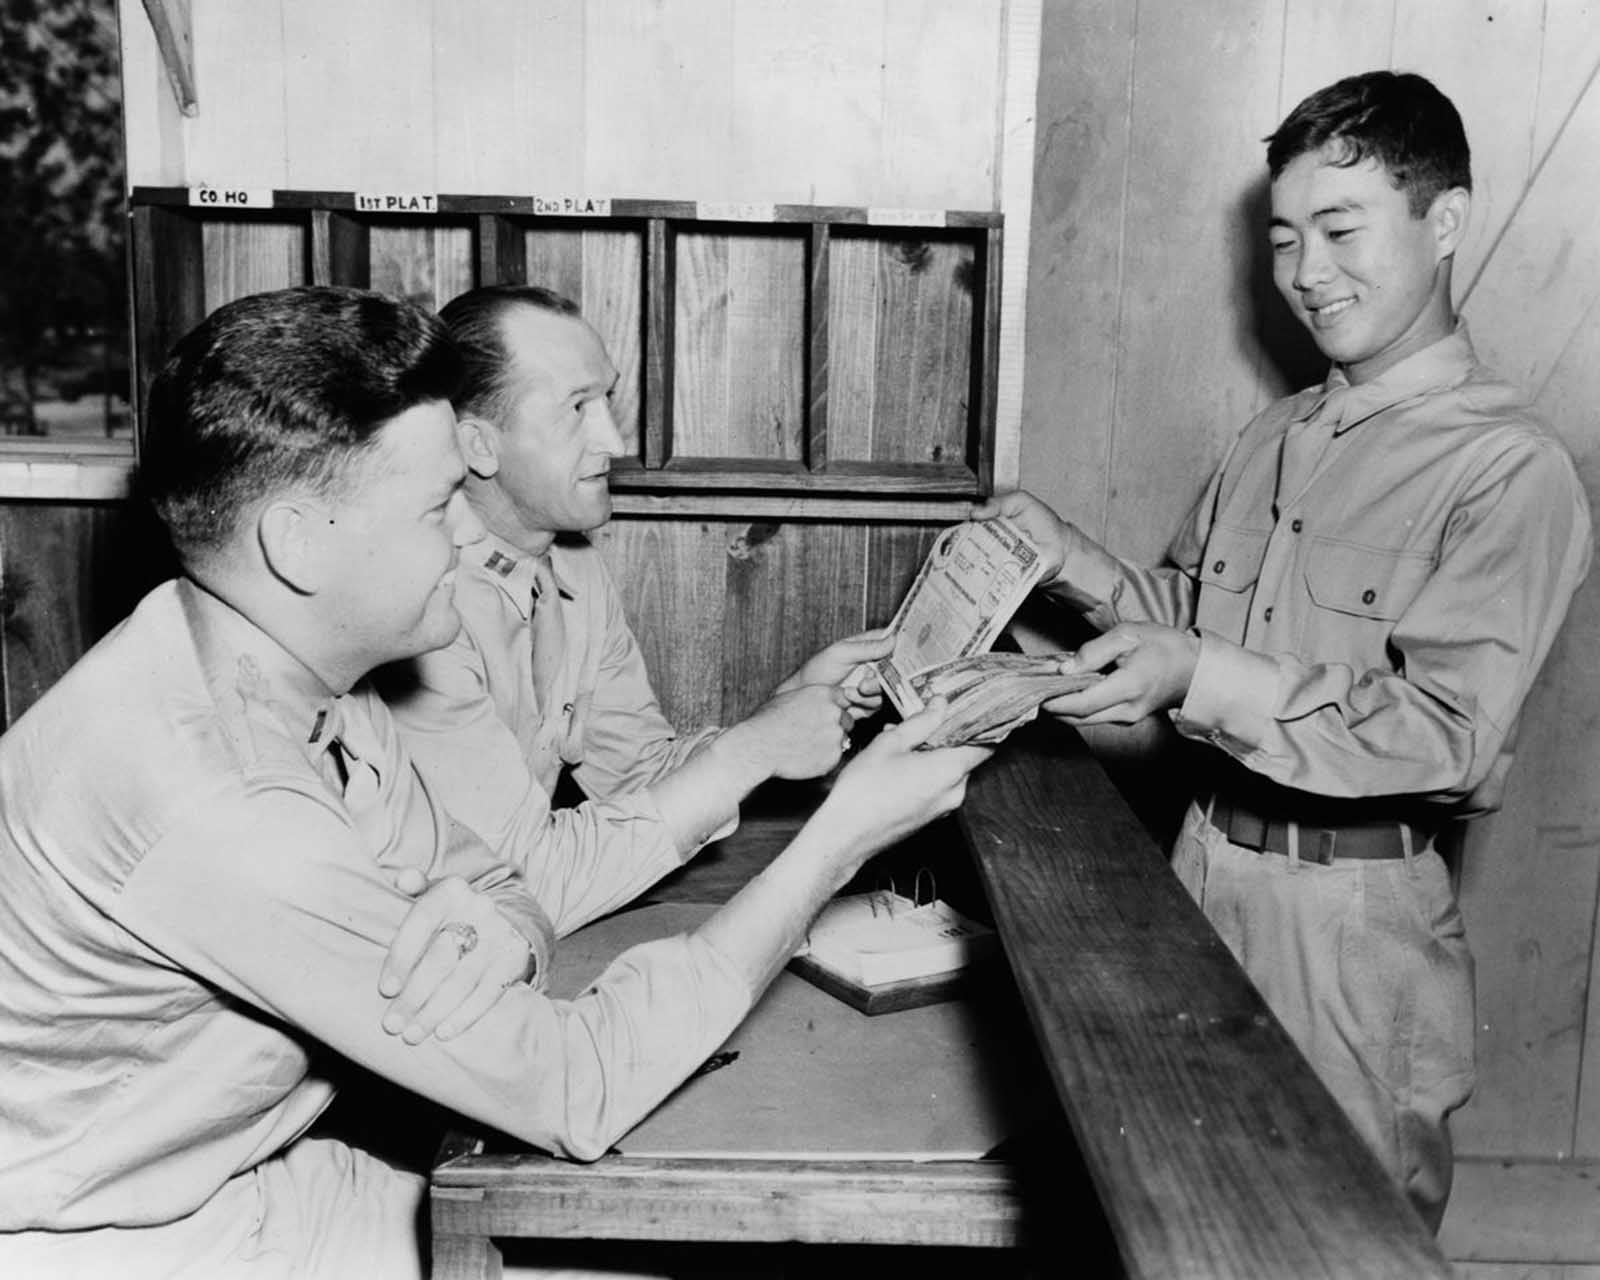 Private Jack Y. Oato purchases $2,500 worth of war bonds from his company commander. June, 1943.